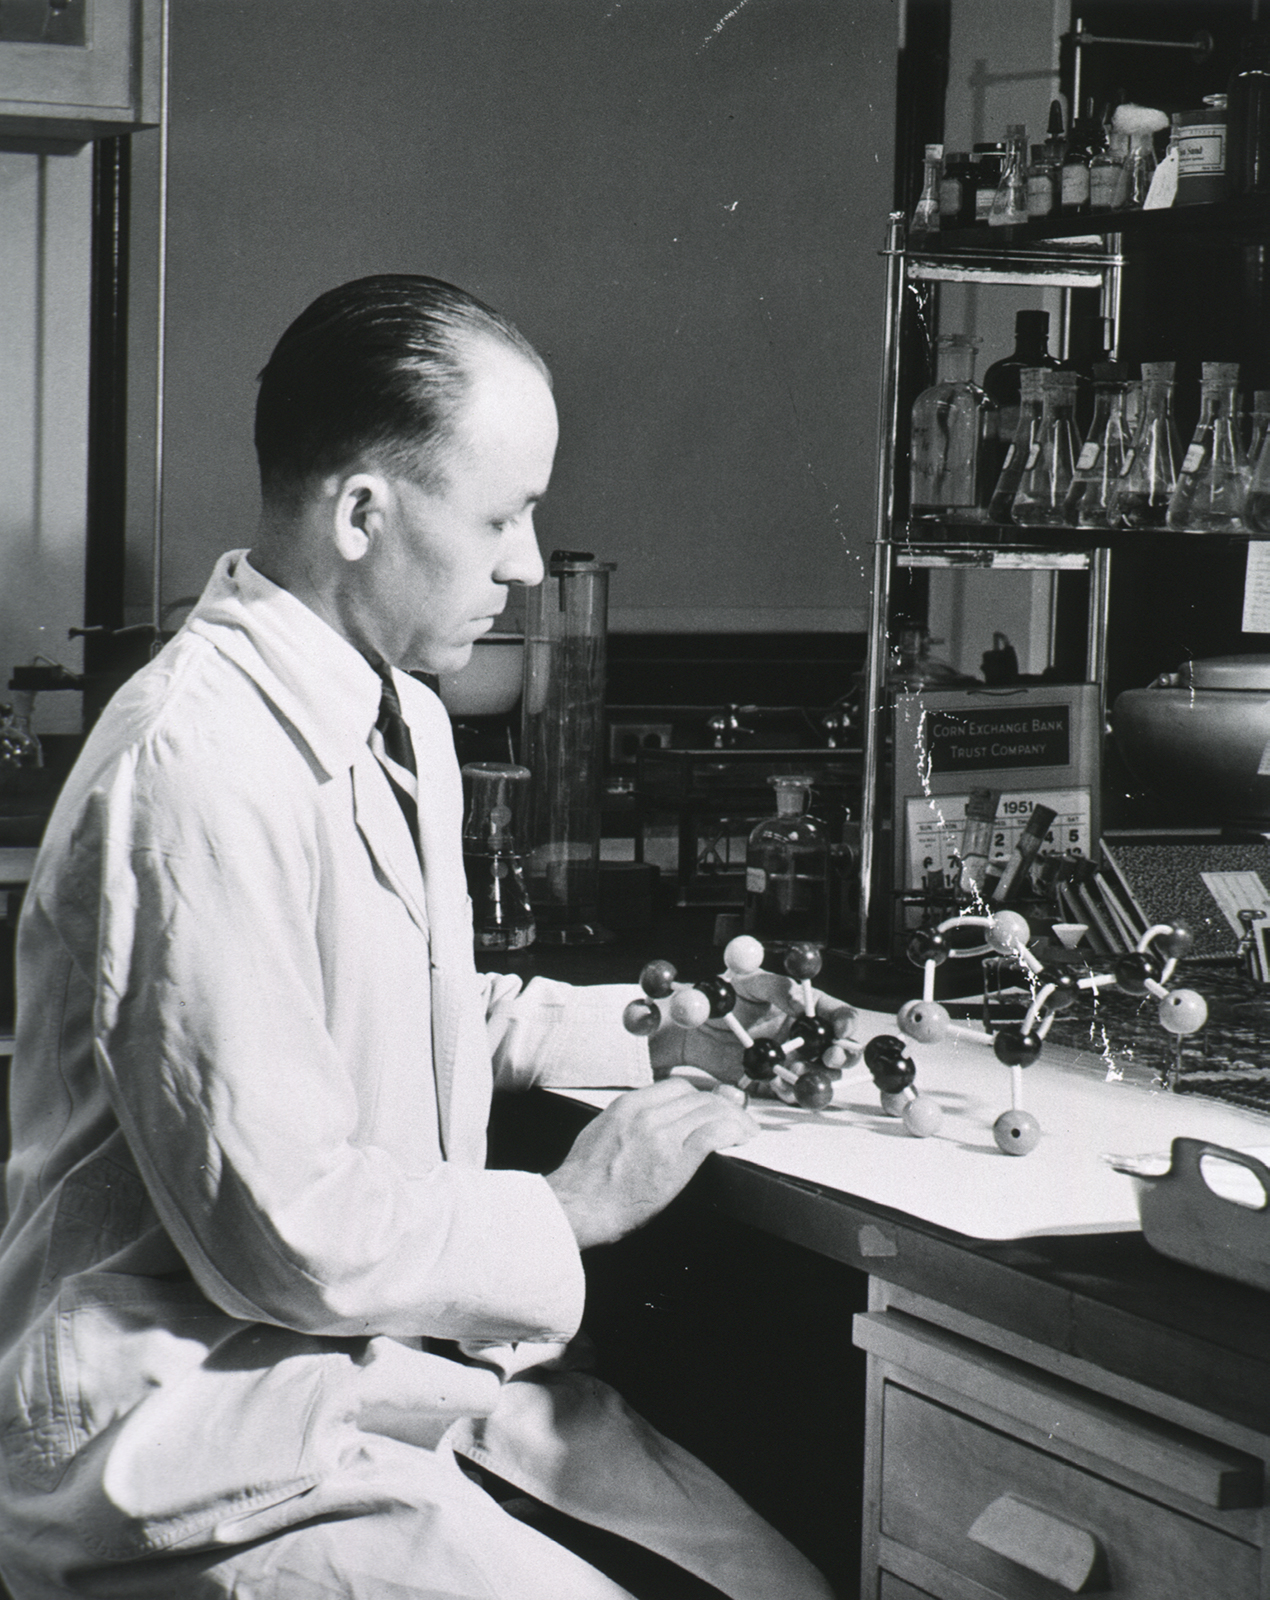 man working at chemistry lab bench